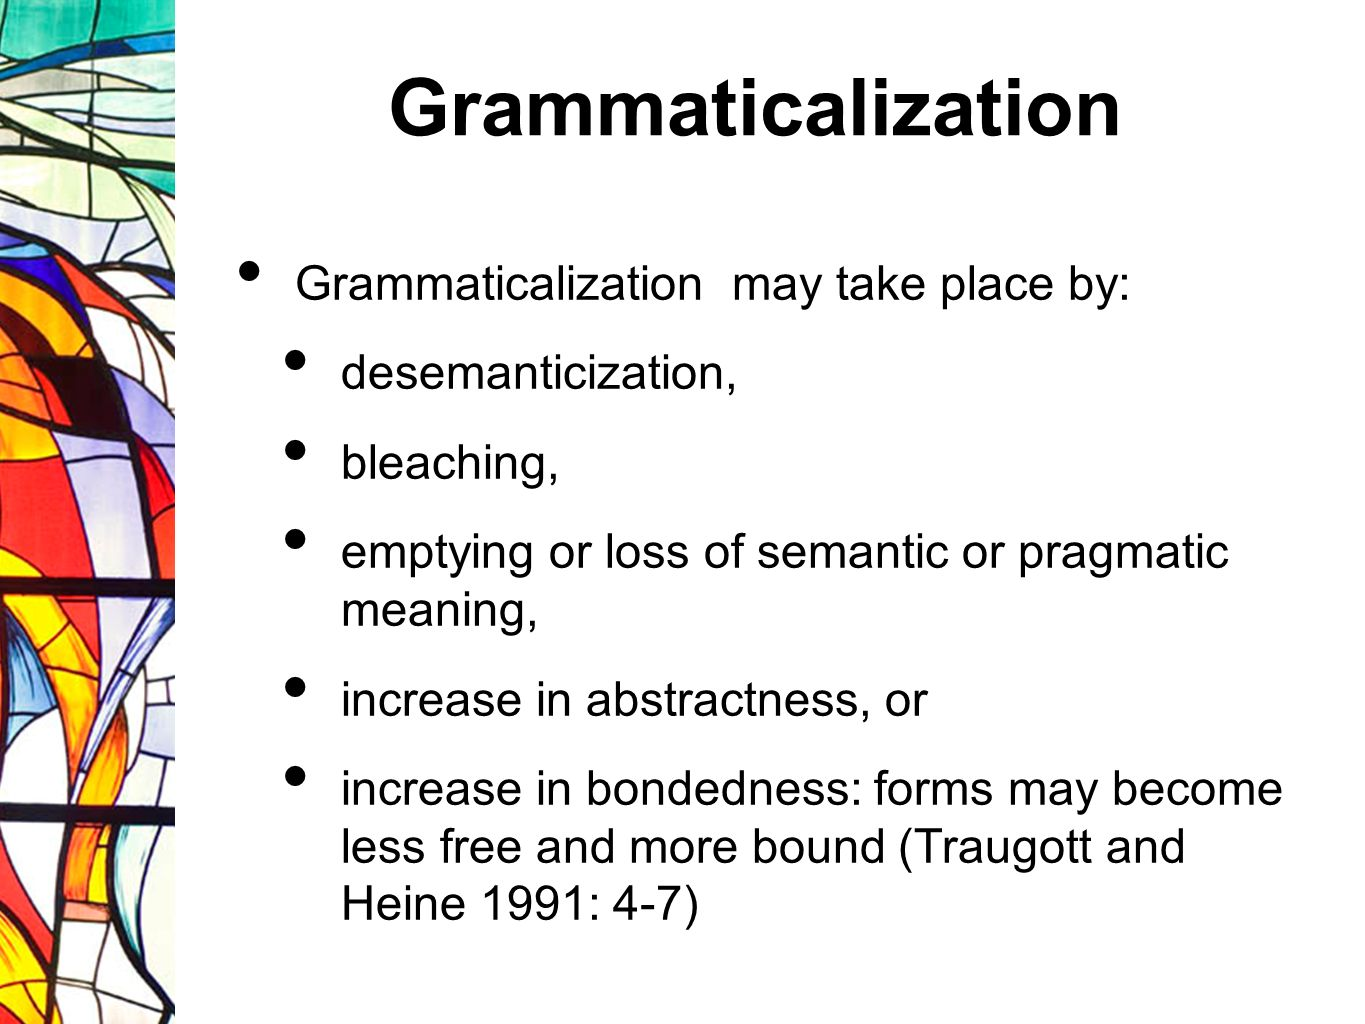 Grammaticalization Semantic context, salience and relative frequency constitute factors that contribute to grammaticalization Grammaticalization is a question of degree: increased syntacticization in its early stages, and increased loss of morphosyntactic independence in its later stages, ultimately leading to zero, i.e.